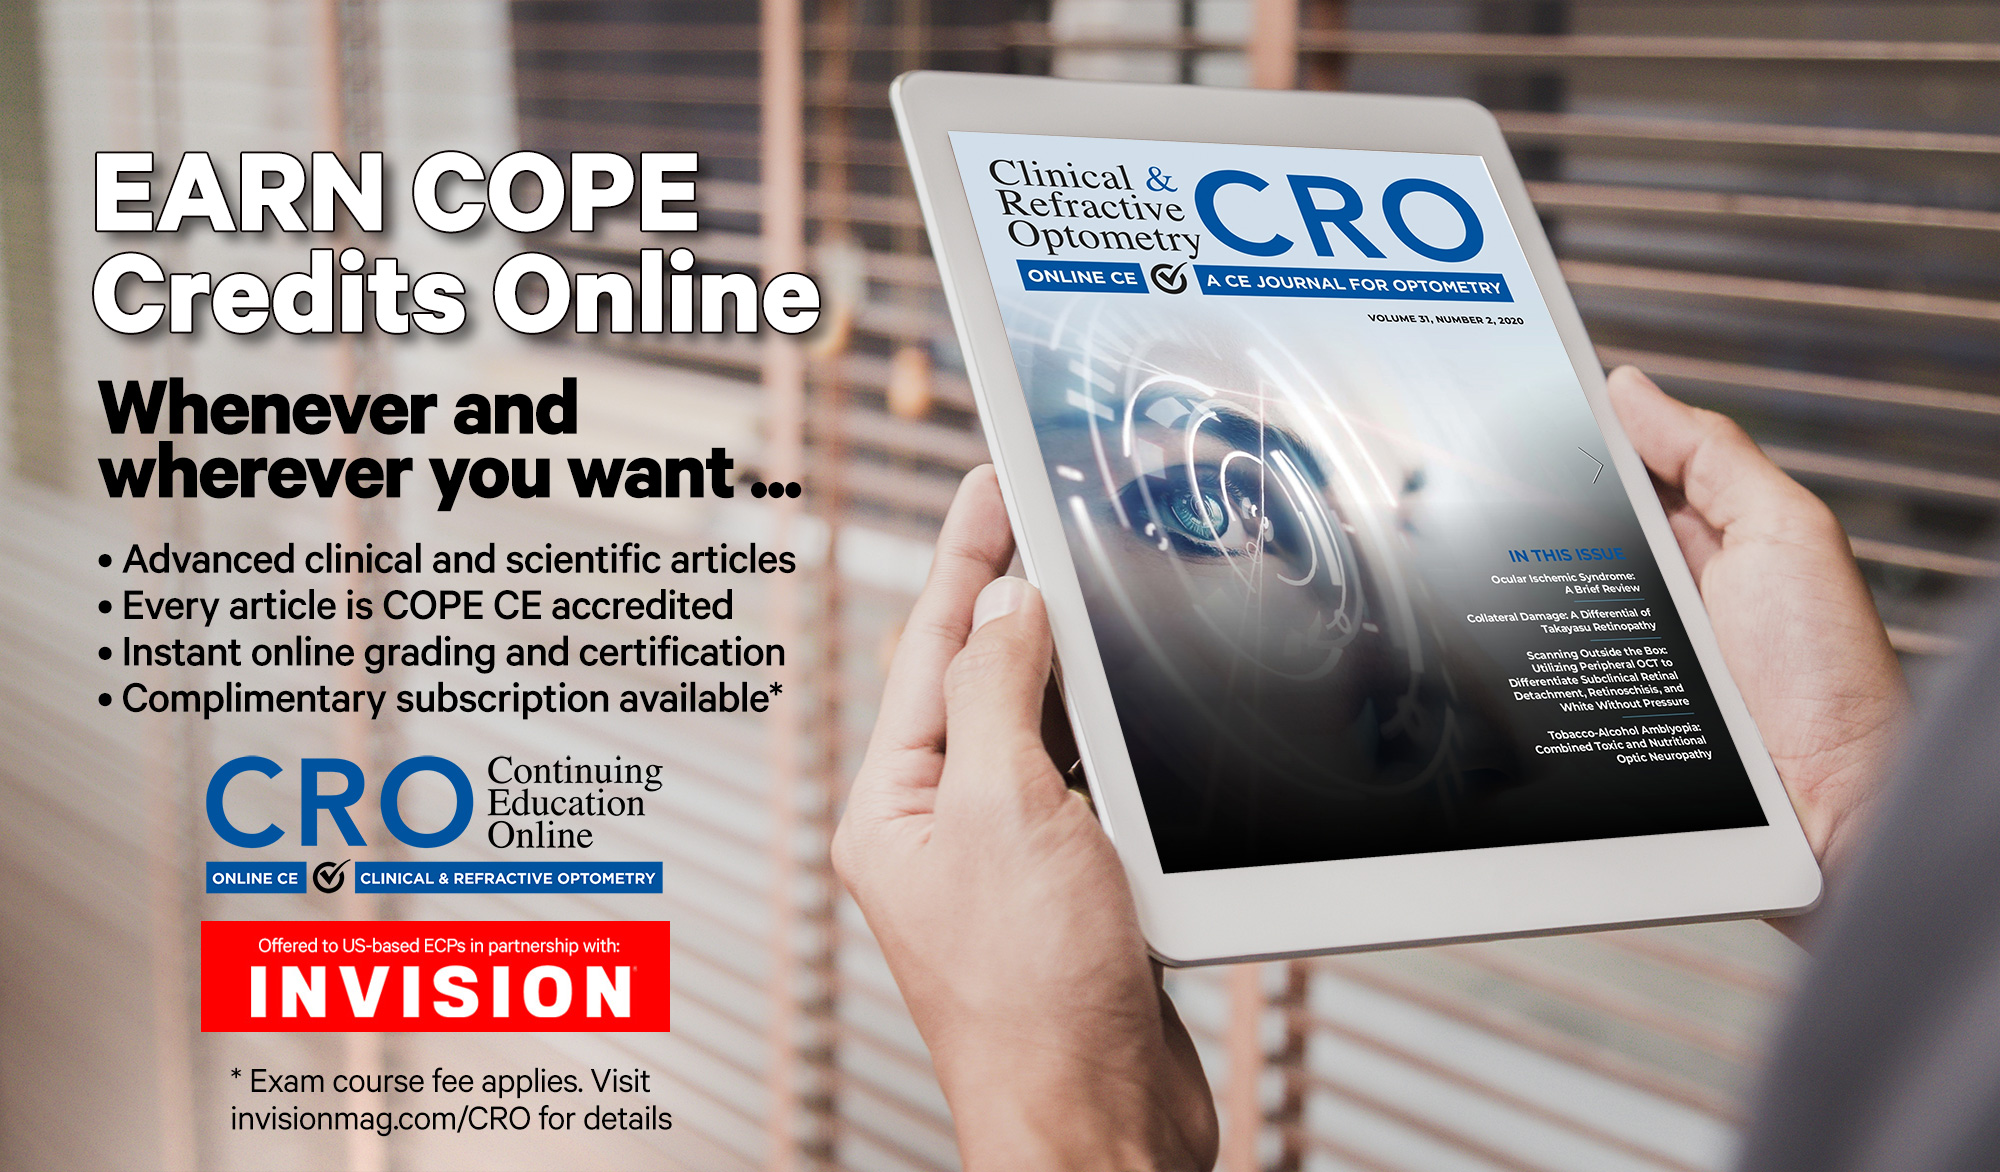 INVISION Partners with CRO Journal to Offer ECPs an Online CE Learning Platform